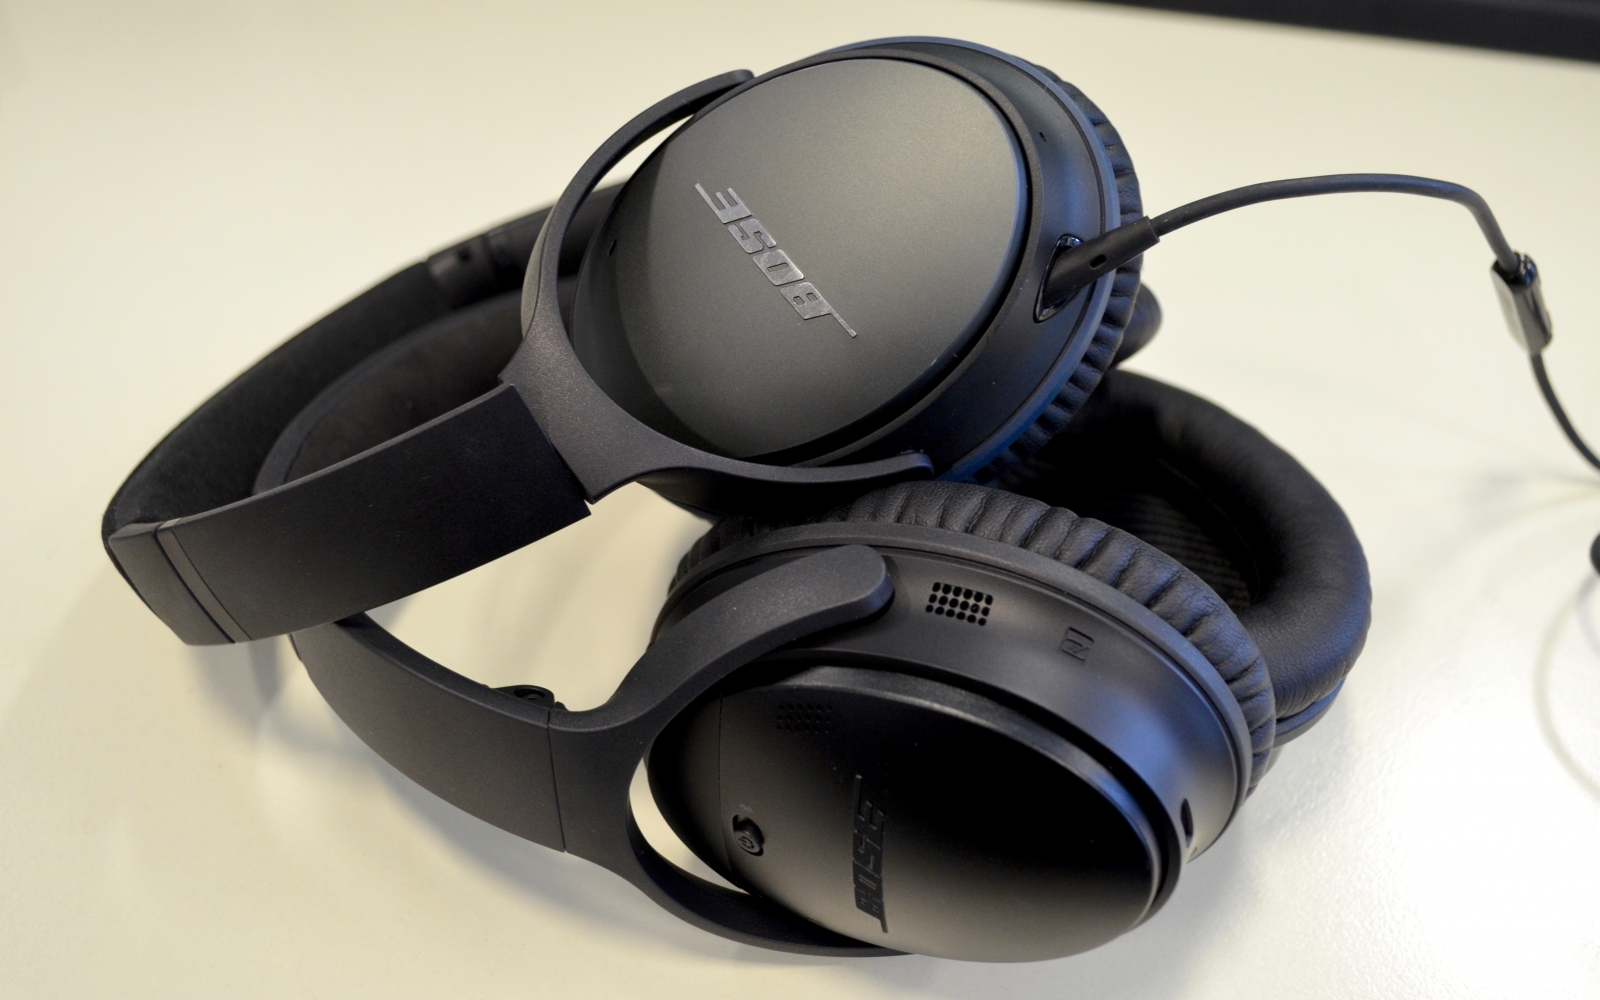 Bose-QC35-Headphones bose headphones where to buy bose noise cancelling over the ear headphones bose noise cancelling headphones comparison quietcomfort 35s bose noise cancellation headset bose cell phone headphones review bose bluetooth headphones bose quietcomfort headphones review bose wireless and noise cancelling headphones bluetooth bose noise cancelling headphones bose over the ear headphones noise cancelling bose computer headset bose headphones noise cancelling review bose in ear headphones noise cancelling review bose qc35 microphone active noise cancellation bose bose quiet noise cancelling headphones best place to buy bose headphones bose quietcomfort 35 battery bose best noise cancelling headphones quietcomfort 35 wireless headphones review bose headphones sound canceling reviews on bose headphones bose headphones cancelling noise bose noise cancelling headset bose comfort headphones bose quietcomfort 35 wireless headphones review discount bose headphones bose over the ear bluetooth headphones bose noise cancelling headset with microphone bose wireless headphones ii bose noise cancelling headphones earbuds bose new wireless headphones bose noise cancelling headphones battery bose wireless headphones earbuds black friday bose headphones bose quiet comforts battery for bose headphones bose noise cancelling headphones with microphone bose sound deadening headphones bose noise cancelling over ear headphones wireless bose noise cancelling wireless bose qc25 where to buy bose noise cancelling headphones bose noise cancelling buds bose noise control headphones qc25 bose bluetooth bose quietcomfort review best price bose noise cancelling headphones bose noise cancelling earbuds sale bose noise cancelling headphones sale bose wireless earbud headphones bose wireless headphones battery life bose headphones noise cancelling sale upcoming bose headphones new bose qc35 best bose headset bose quiet headphones bose headphones battery life bose qc25 wireless headphones bose quietcomfort bluetooth headphones bose 35 review review bose headphones bose in ear noise cancelling headphones review bose q35 review bose wireless phone headset bose over the ear wireless headphones bose noise cancelling earbuds wireless bose headset battery in ear bose noise cancelling headphones bose headphones bluetooth review pink bose headphones best wireless bose headphones bose new noise cancelling headphones bose noise cancelling headphones microphone bose qc35 review bose wireless over the ear headphones bose qc 35 reviews noise cancelling headphones wireless bose best price on bose headphones bose headphones noise cancelling in ear quietcomfort 35 review earbud noise cancelling headphones bose telephone headset bose bluetooth noise cancelling headphones review wireless noise cancelling headset noise cancelling wireless headset best price bose wireless headphones bose quietcomfort 10 bose headphones 2016 new bose quietcomfort bose sound suppression headphones best price for bose noise cancelling headphones bose noise cancelling headphones on sale bose quietcomfort new bose noise cancelling headphones quietcomfort bose headphones microphone bose usb headset noise cancelling headphones for phone calls bose sound eliminating headphones bose headphones wireless review bose noise cancelling headphones over ear bose gaming headphones bose headphones discount bose wireless headphones for running noise blocking headset bose noise cancelling over the ear headphones best wireless noise cancelling headset bose noise cancelling headphones discount bose noise cancelling headphones comparison bose noise cancellation headset best airplane noise cancelling headphones bose wireless and noise cancelling headphones bluetooth bose noise cancelling headphones bose over the ear headphones noise cancelling best active noise cancelling bluetooth headphones bose headphones noise cancelling review active sound cancellation active noise cancellation bose best noise cancelling headphones for the price bose best noise cancelling headphones bose headphones sound canceling sound cancelling headset bose headphones cancelling noise bose noise cancelling headphones airplane noise reducing headsets bose noise cancelling headset bose noise cancelling headset with microphone compare bose noise cancelling headphones noise cancellers bose noise cancelling headphones earbuds best noise reduction headset best bluetooth noise cancelling headphone